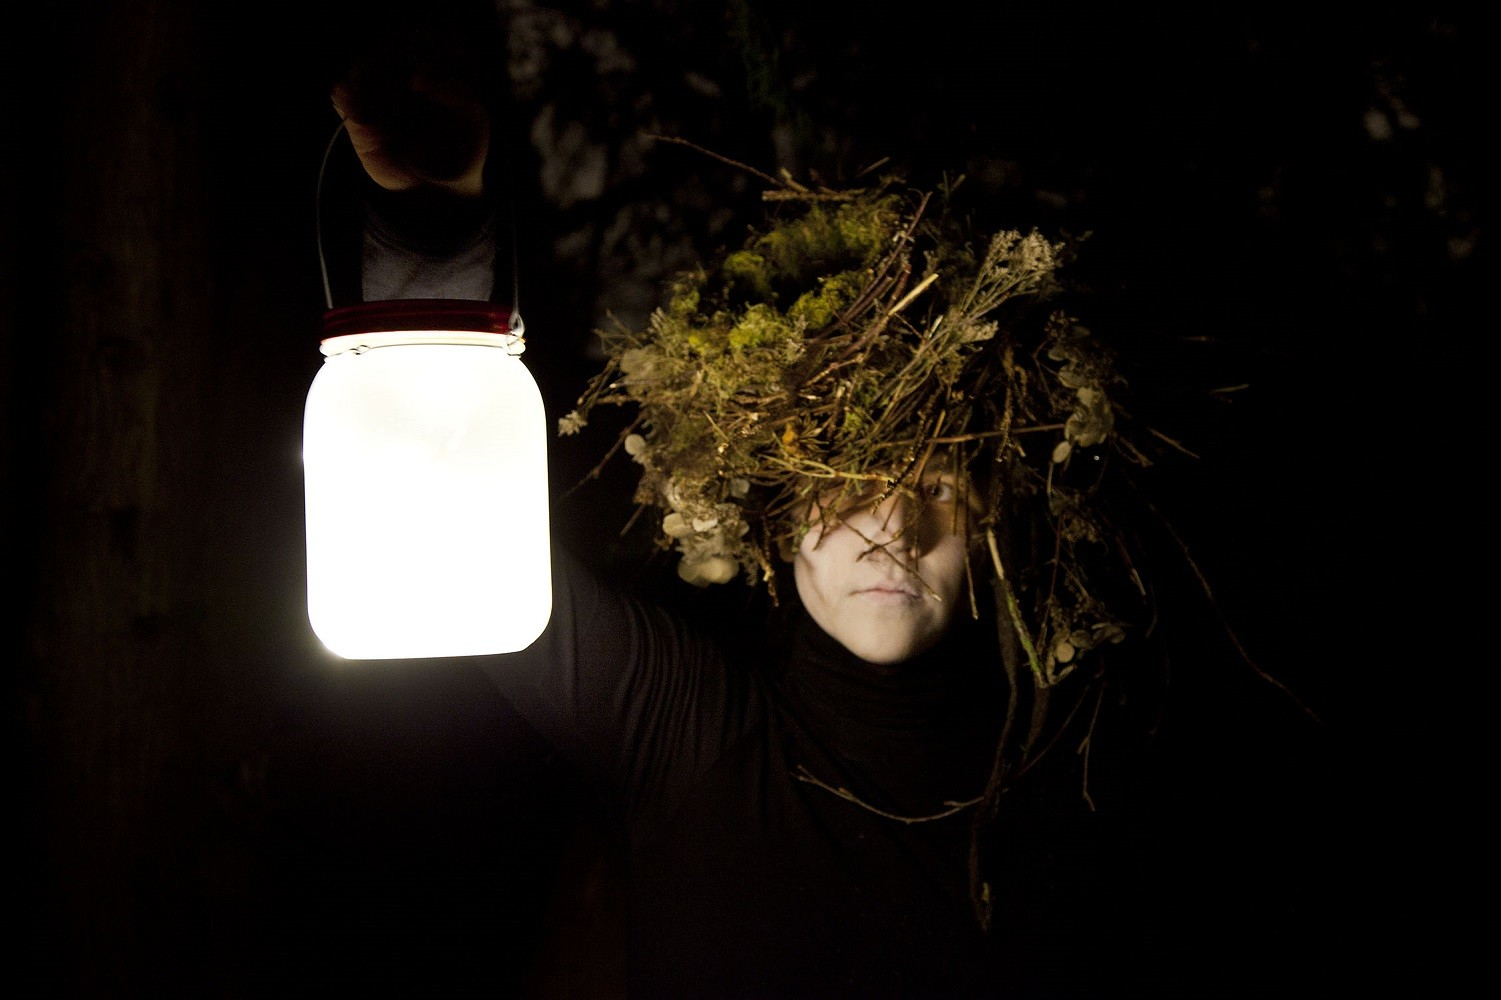 "<span class=""link fancybox-details-link""><a href=""/artists/122/series/wanderings/32474-meryl-mcmaster-night-fragments-2015/"">View Detail Page</a></span><div class=""artist""><strong>Meryl McMaster</strong></div> b. 1988 <div class=""title""><em>Night Fragments</em>, 2015</div> <div class=""signed_and_dated"">From the series ""Wanderings""<br /> Signed, titled, dated, and editioned, au verso<br /> Printed in 2015</div> <div class=""medium"">Pigment print on archival watercolour paper</div> <div class=""dimensions"">30 x 45 inch (76.2 x 114.3 cm)</div> <div class=""edition_details"">Edition of 3 + 2 APs</div><div class=""copyright_line""> </div>"